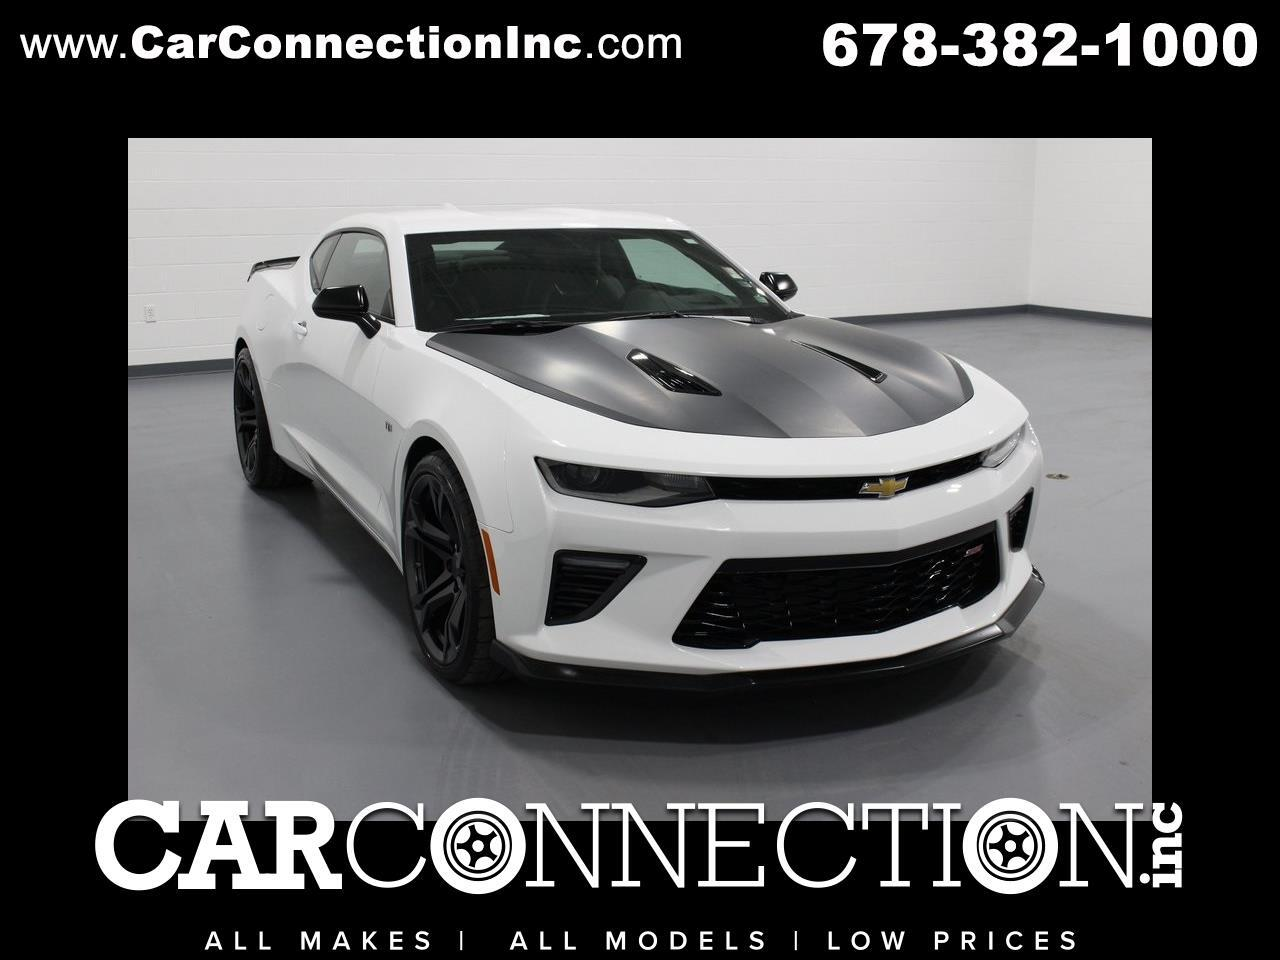 2019 Chevrolet Camaro 2dr Cpe SS w/2SS